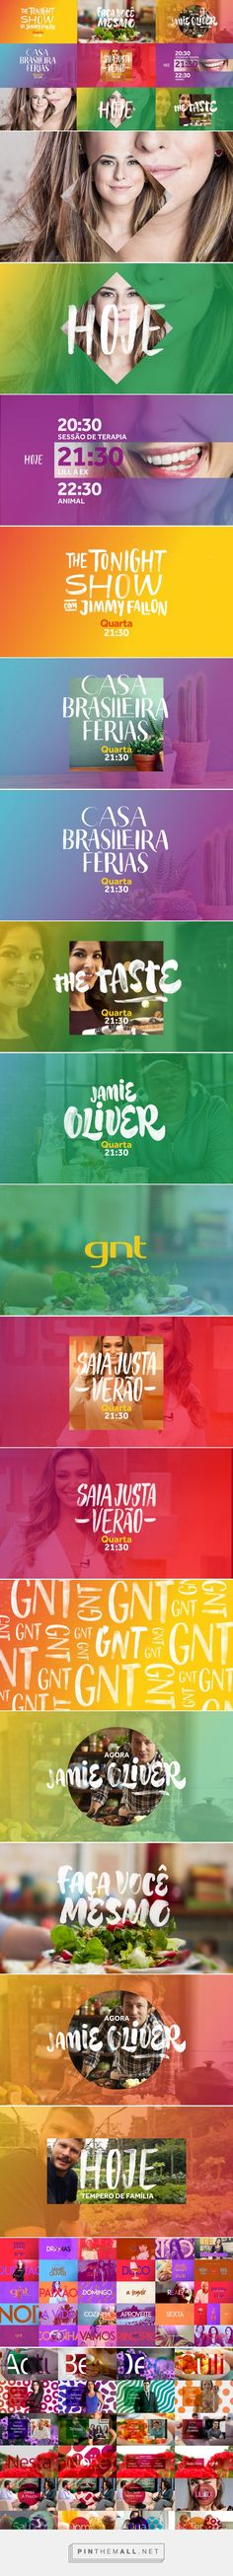 Globosat GNT Channel Branding Refresh on Behance... - a grouped images picture - Pin Them All